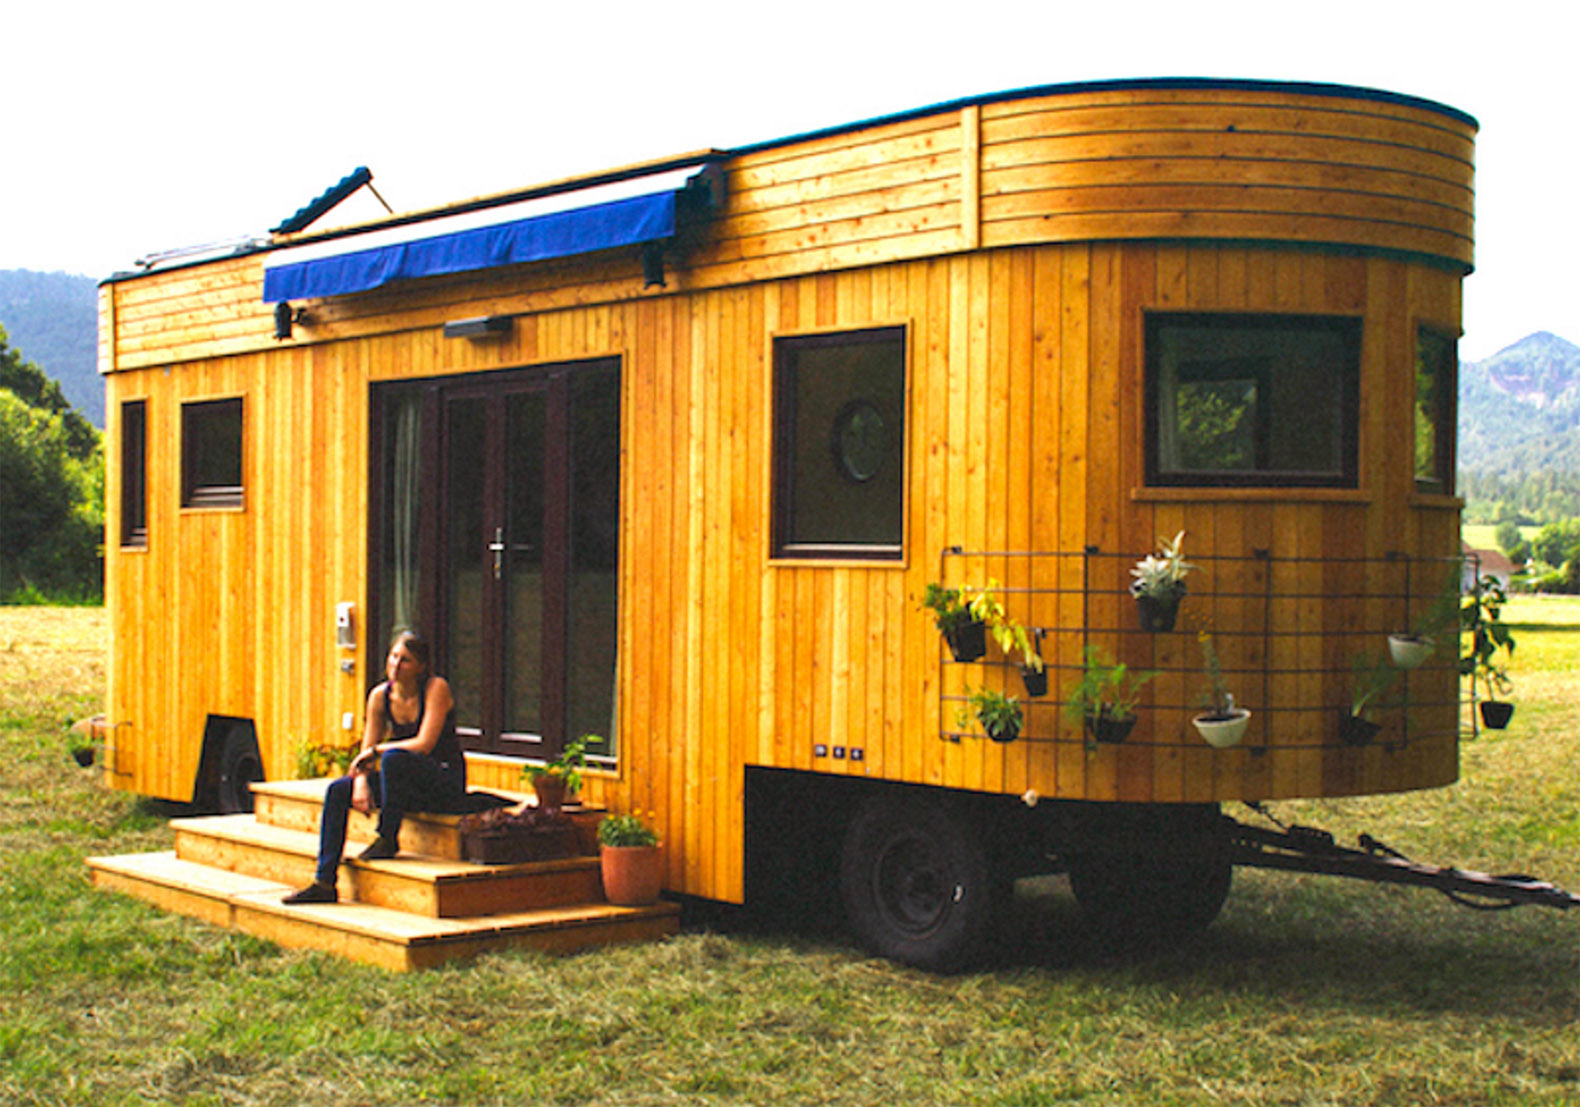 Tiny Houses Inhabitat Green Design Innovation Architecture